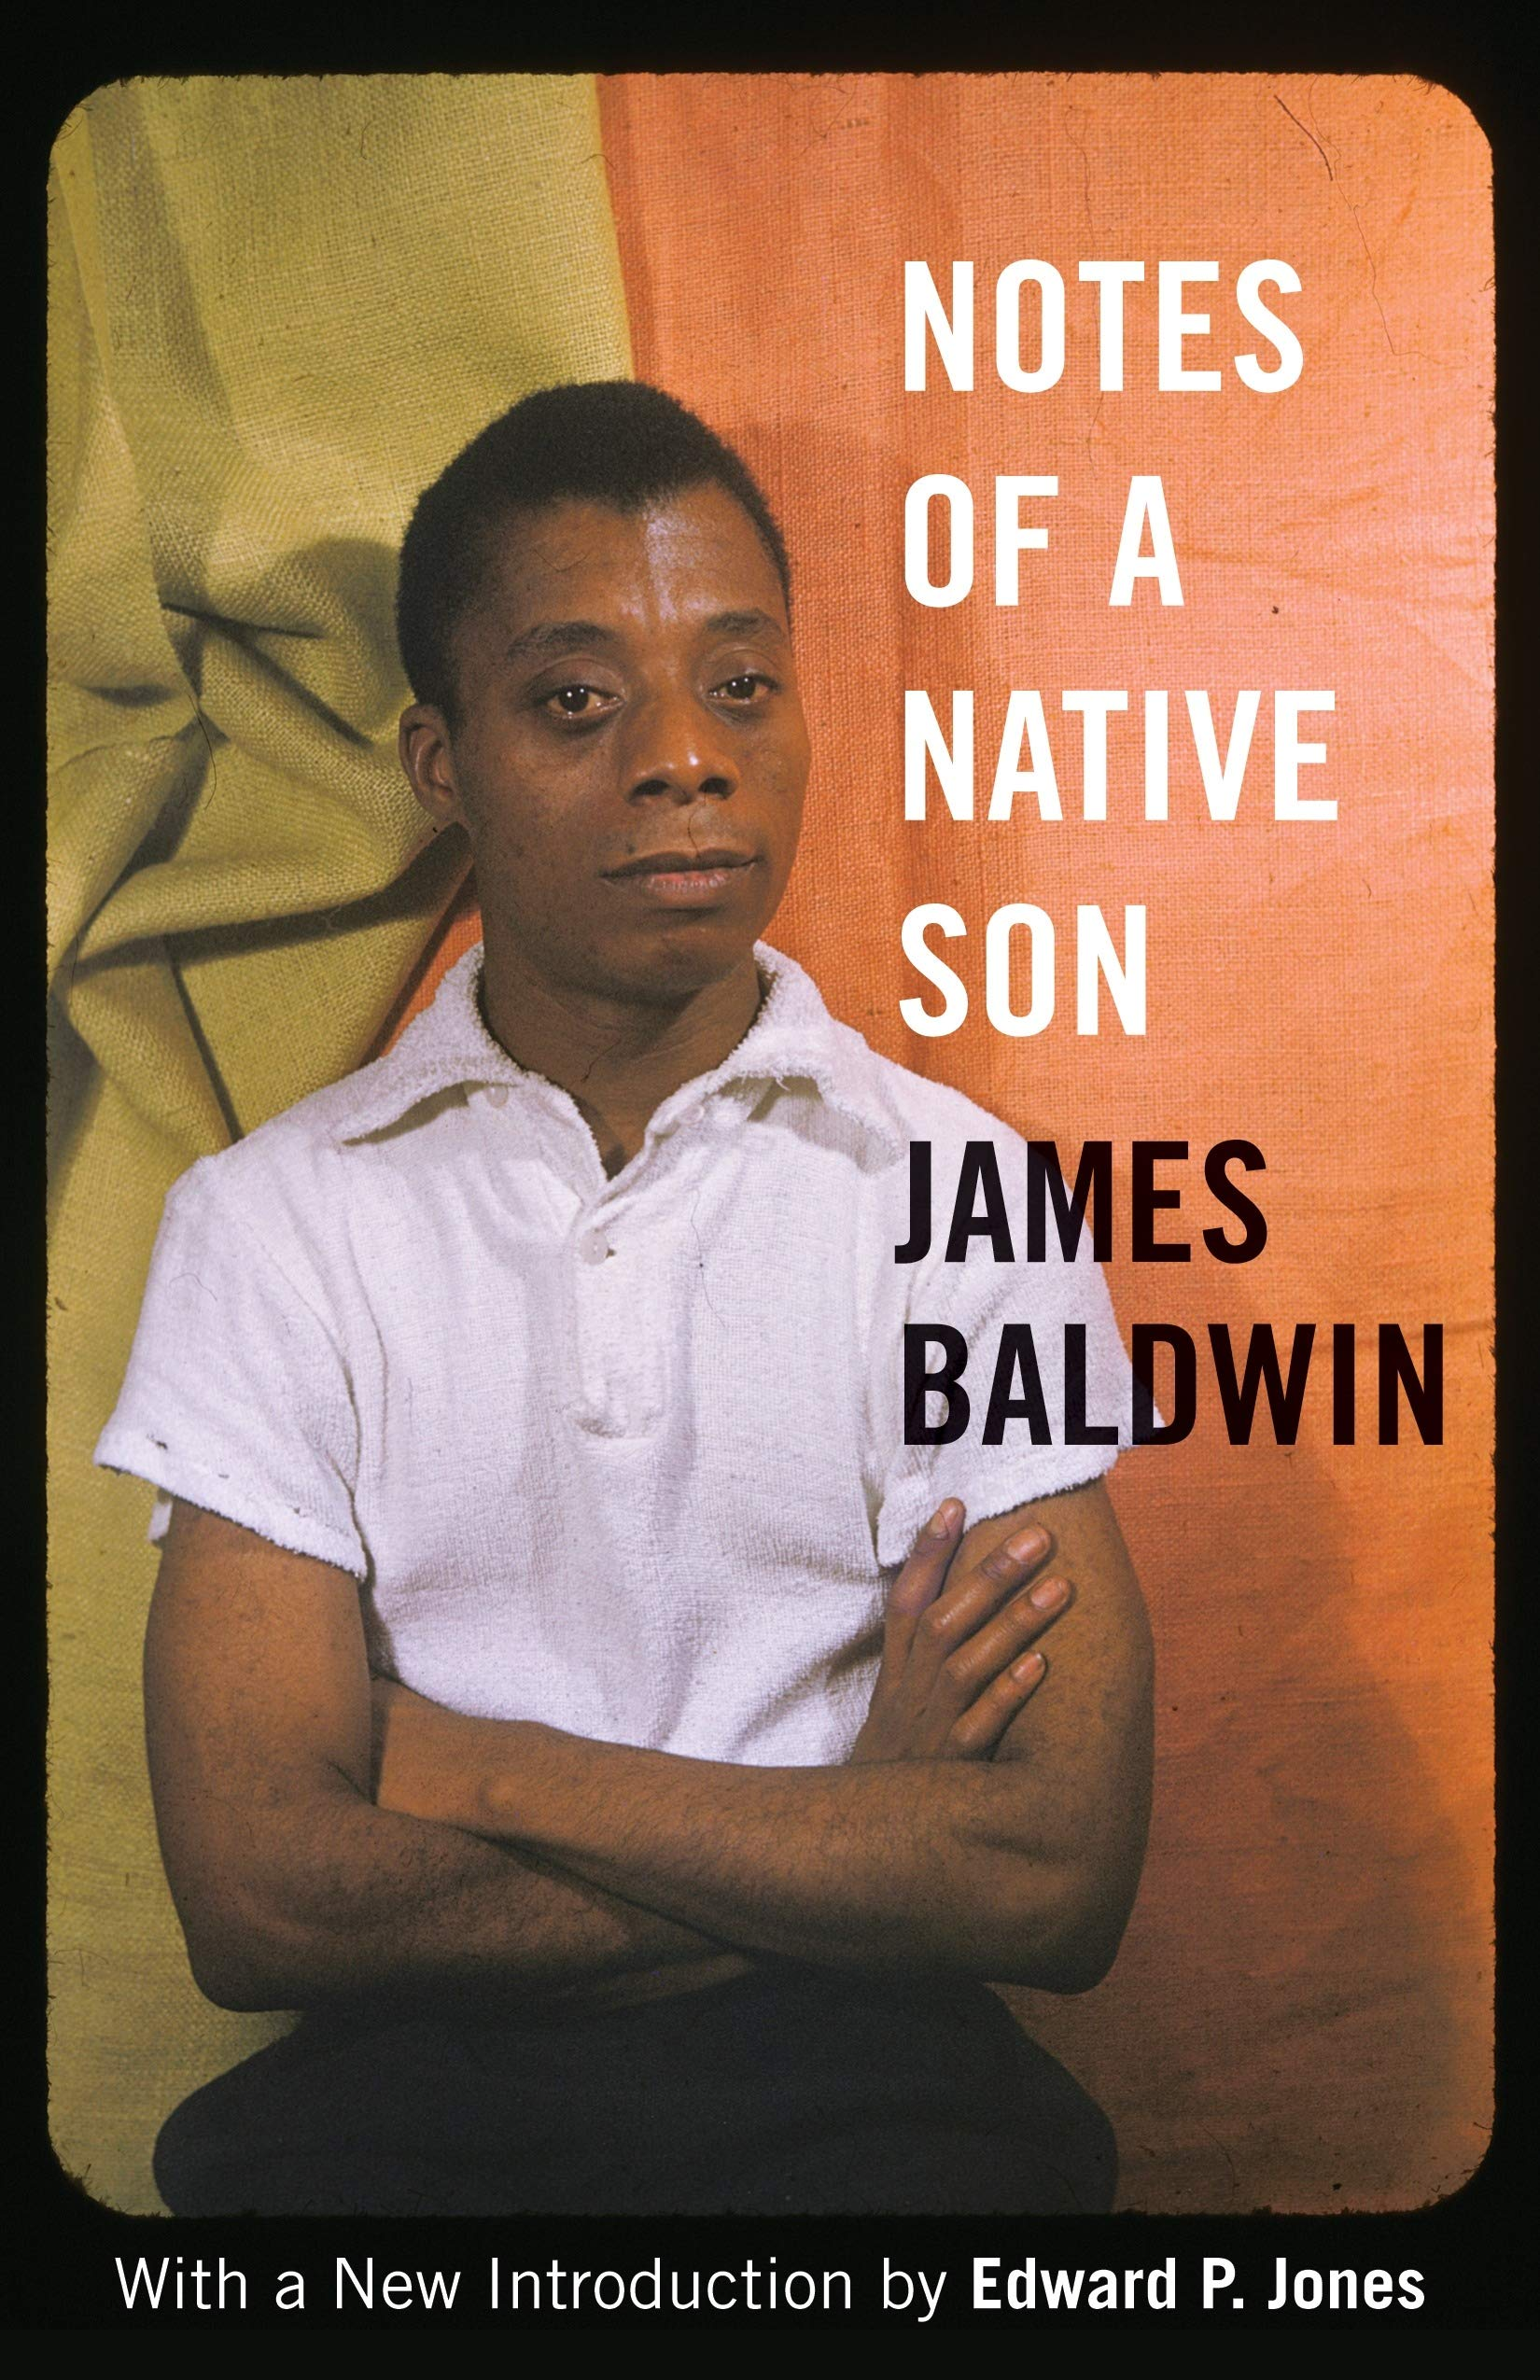 014 Essay Example 81exdnt0zvl James Baldwin Collected Wondrous Essays Table Of Contents Ebook Google Books Full